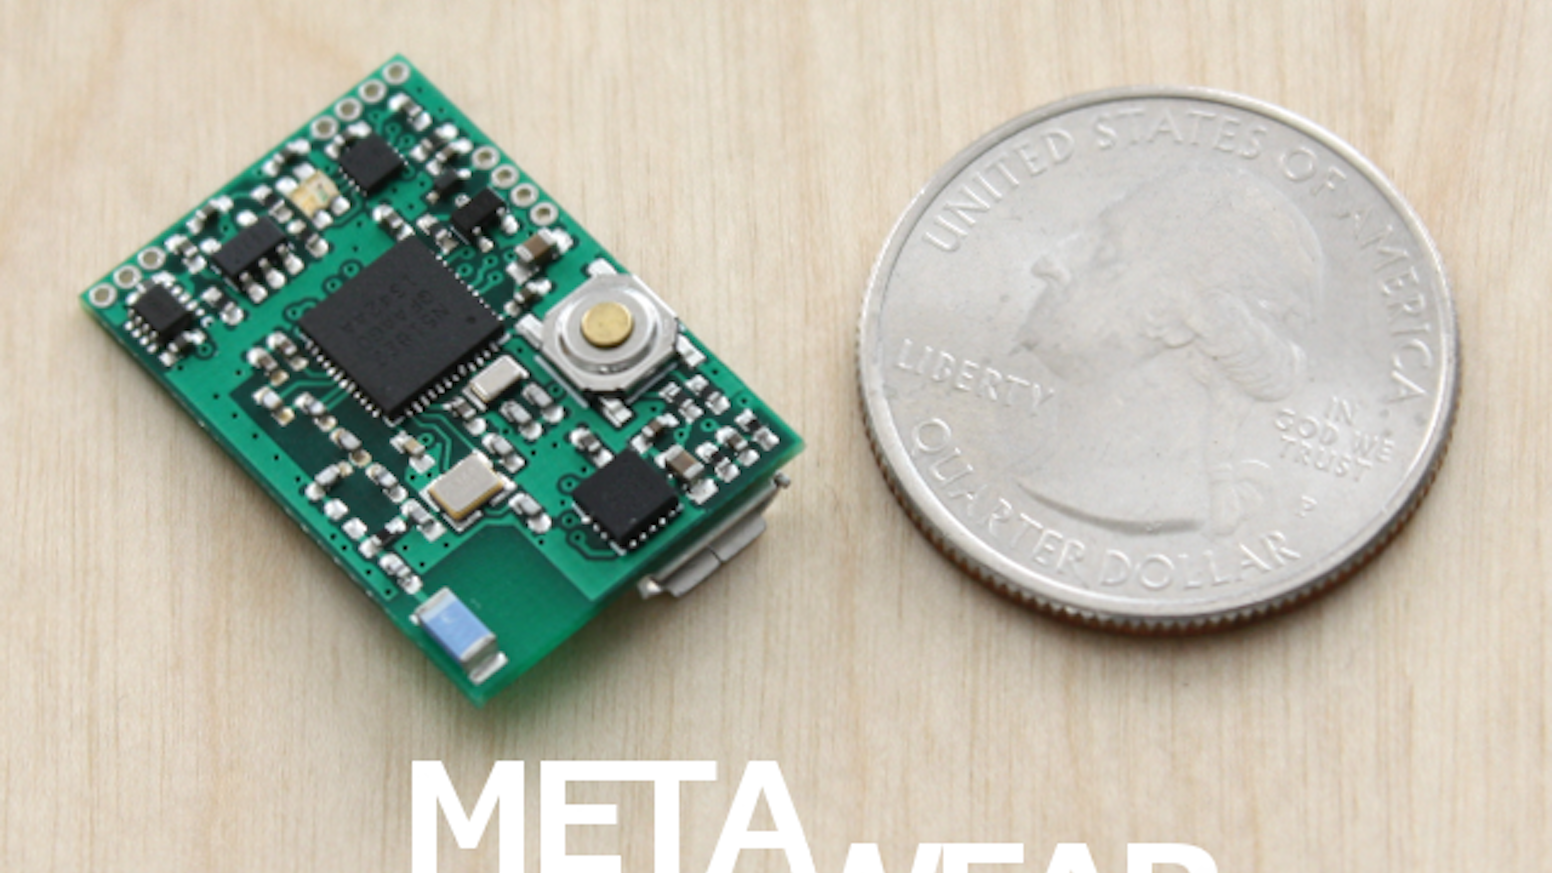 Metawear Production Ready Wearables In 30 Minutes Or Less By Circuit Board Tshirt Cool Geeky Technology Computer Mens Shirt A Tiny And Powerful Arm Bluetooth Le Platform For Developing Wearable Sensor Products Quick Prototyping